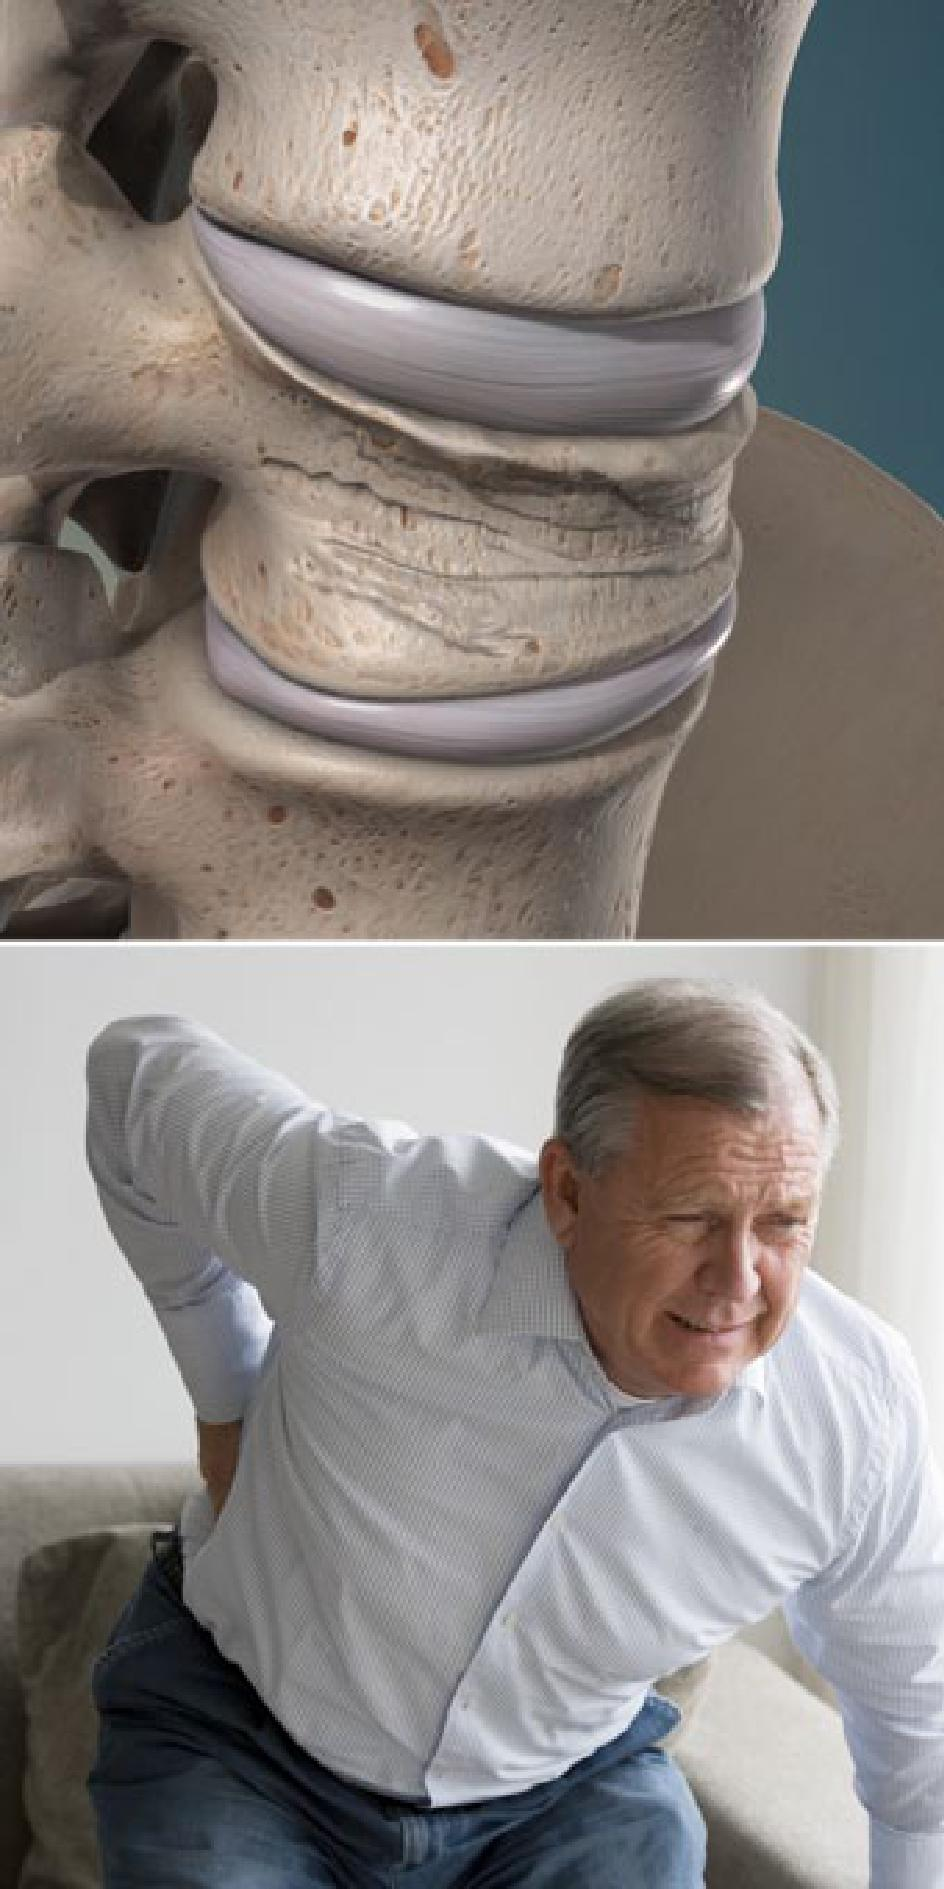 Compression Fractures of the Spine Show Low AZ